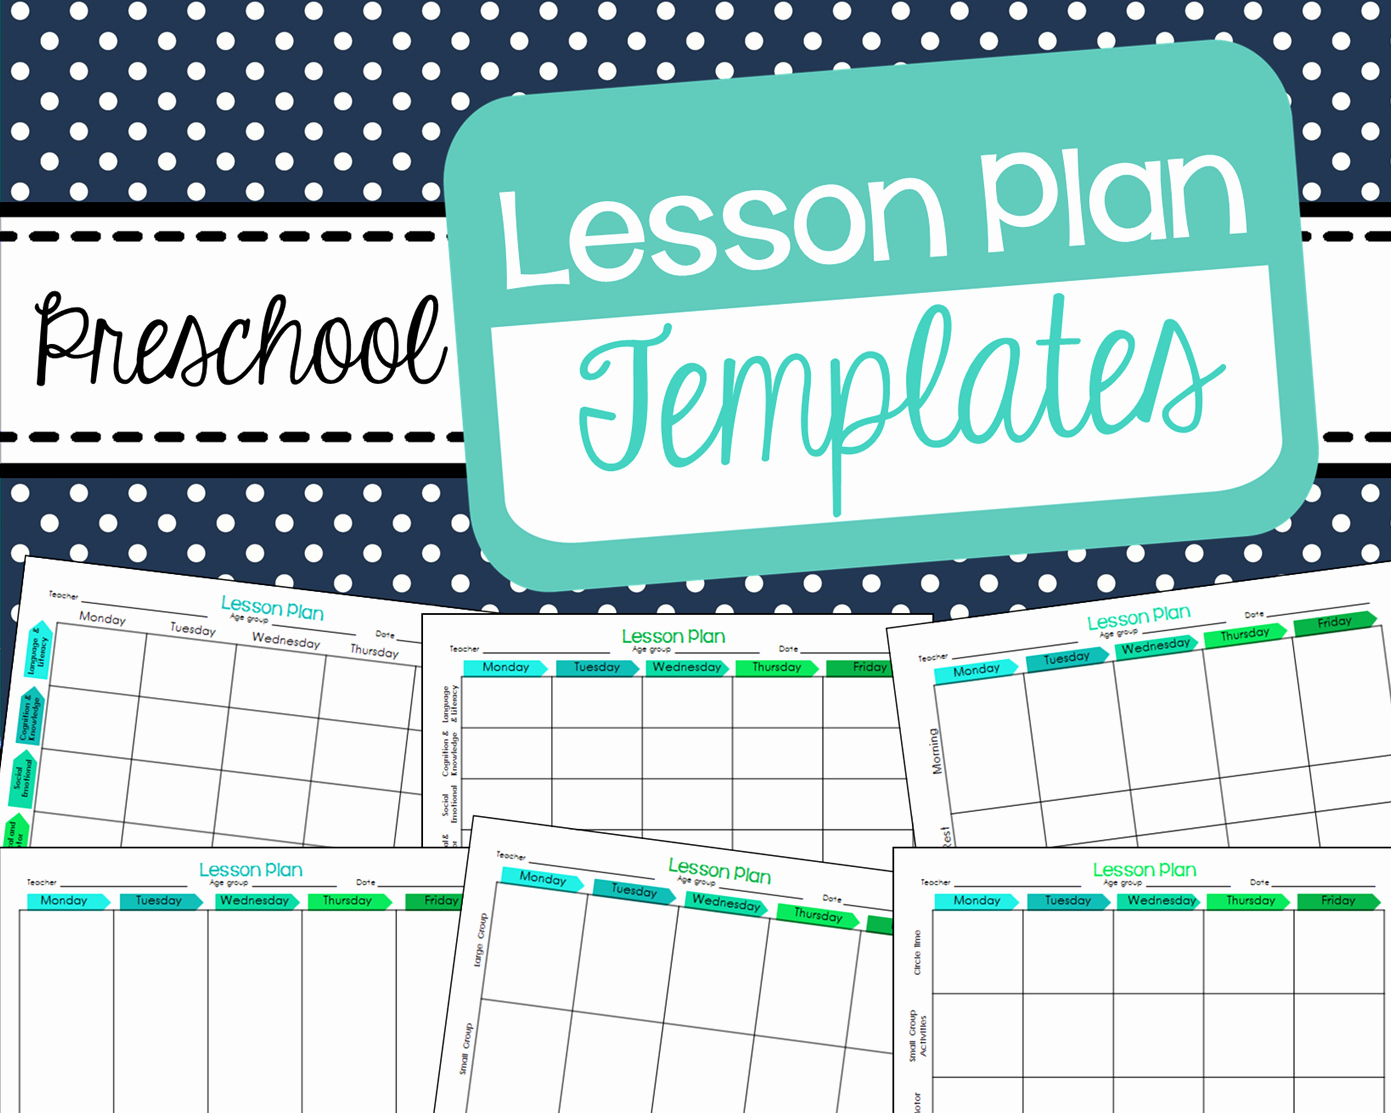 Lesson Plan Template Preschool Beautiful Free Preschool Lesson Plan Templates